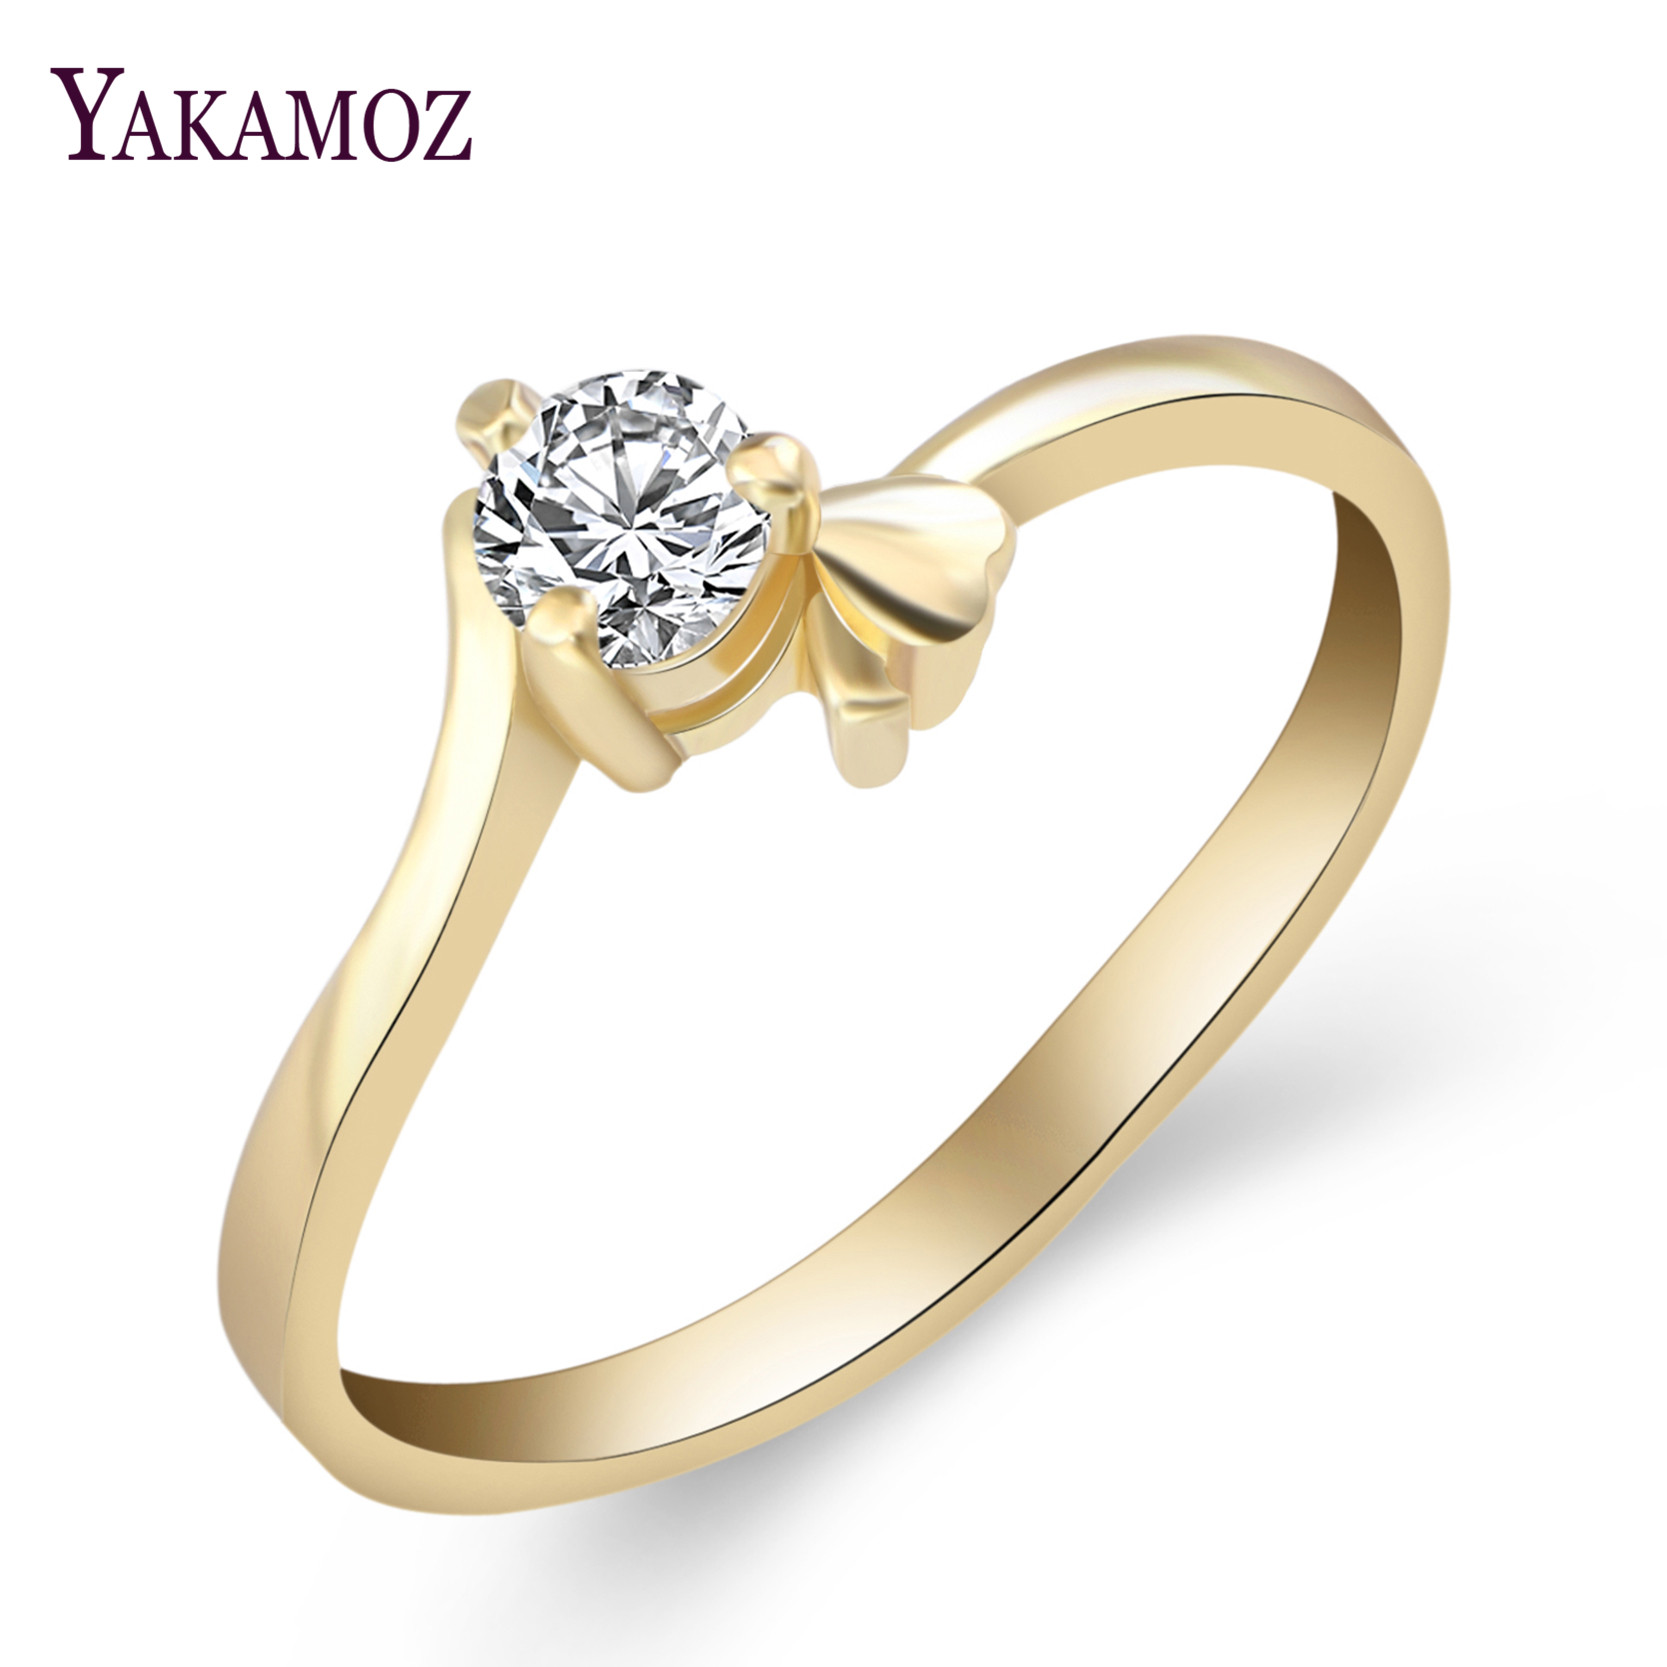 Sale 2018 Wedding Rings for Women Cubic Zirconia White Gold Yellow Gold Luxury Fashion Jewelry